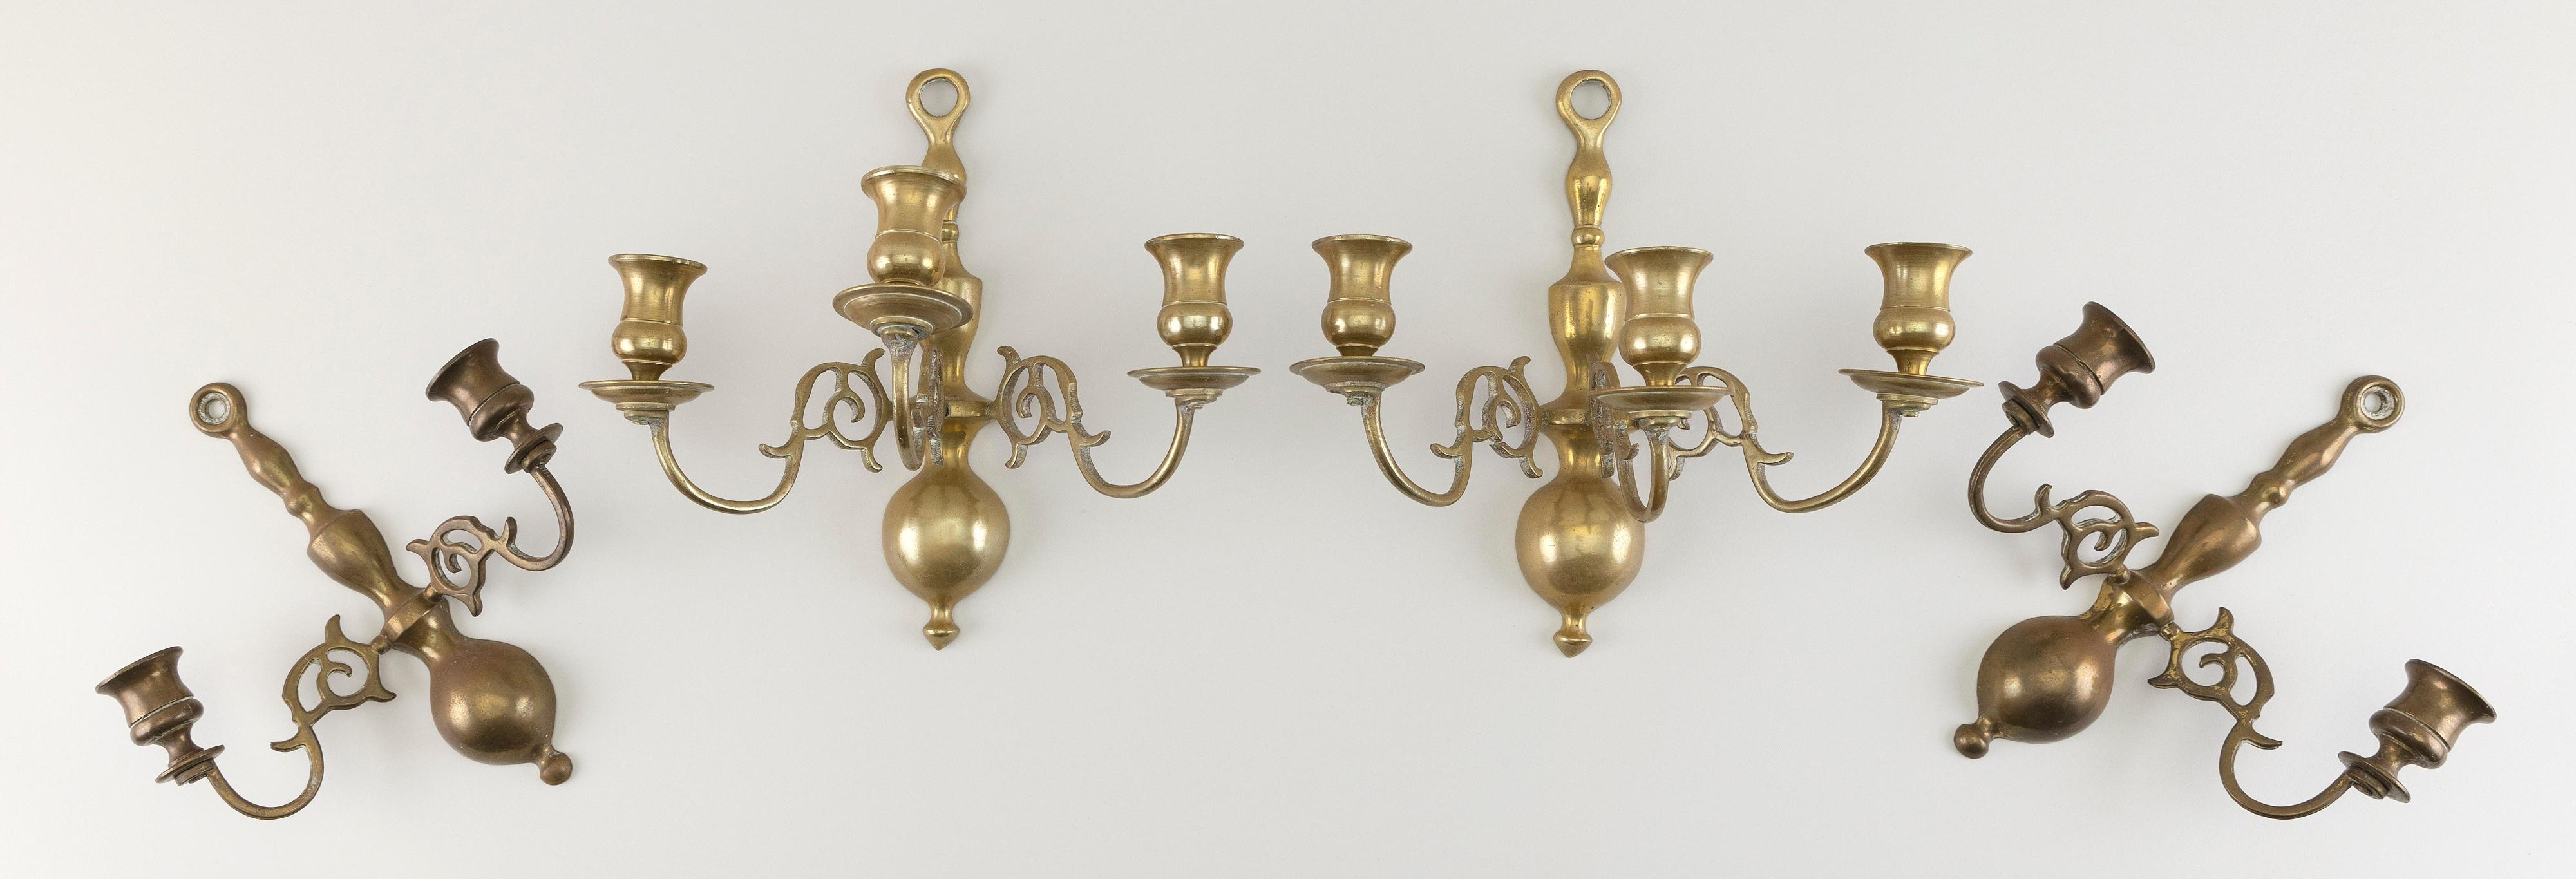 "TWO PAIRS OF BRASS WALL SCONCES Early 20th Century Heights 9"" and 10""."